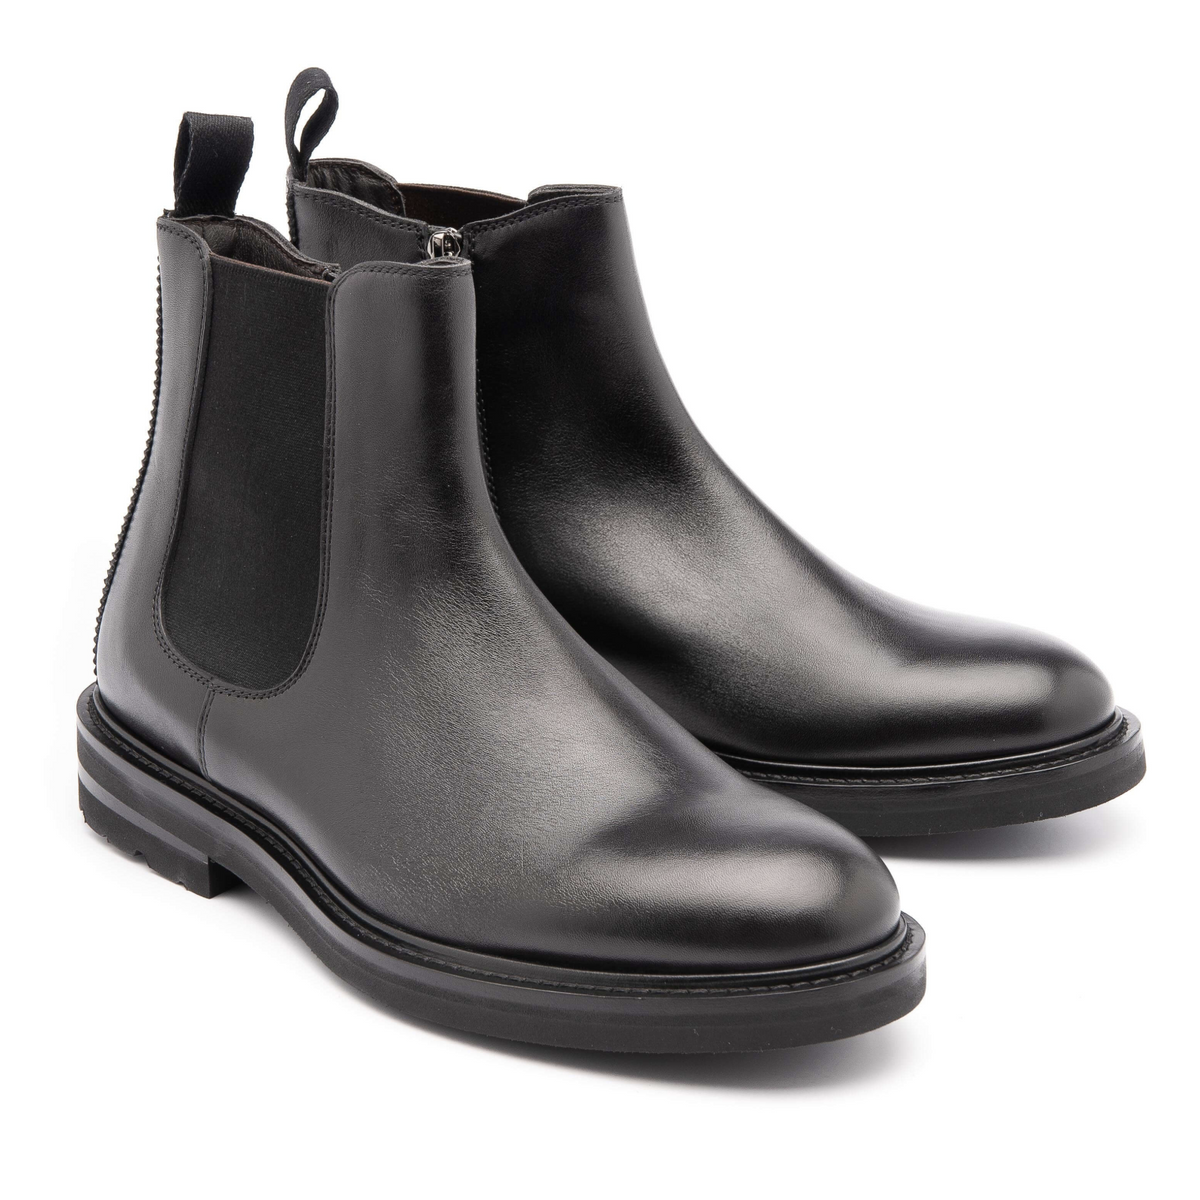 Douglas Leather Boots